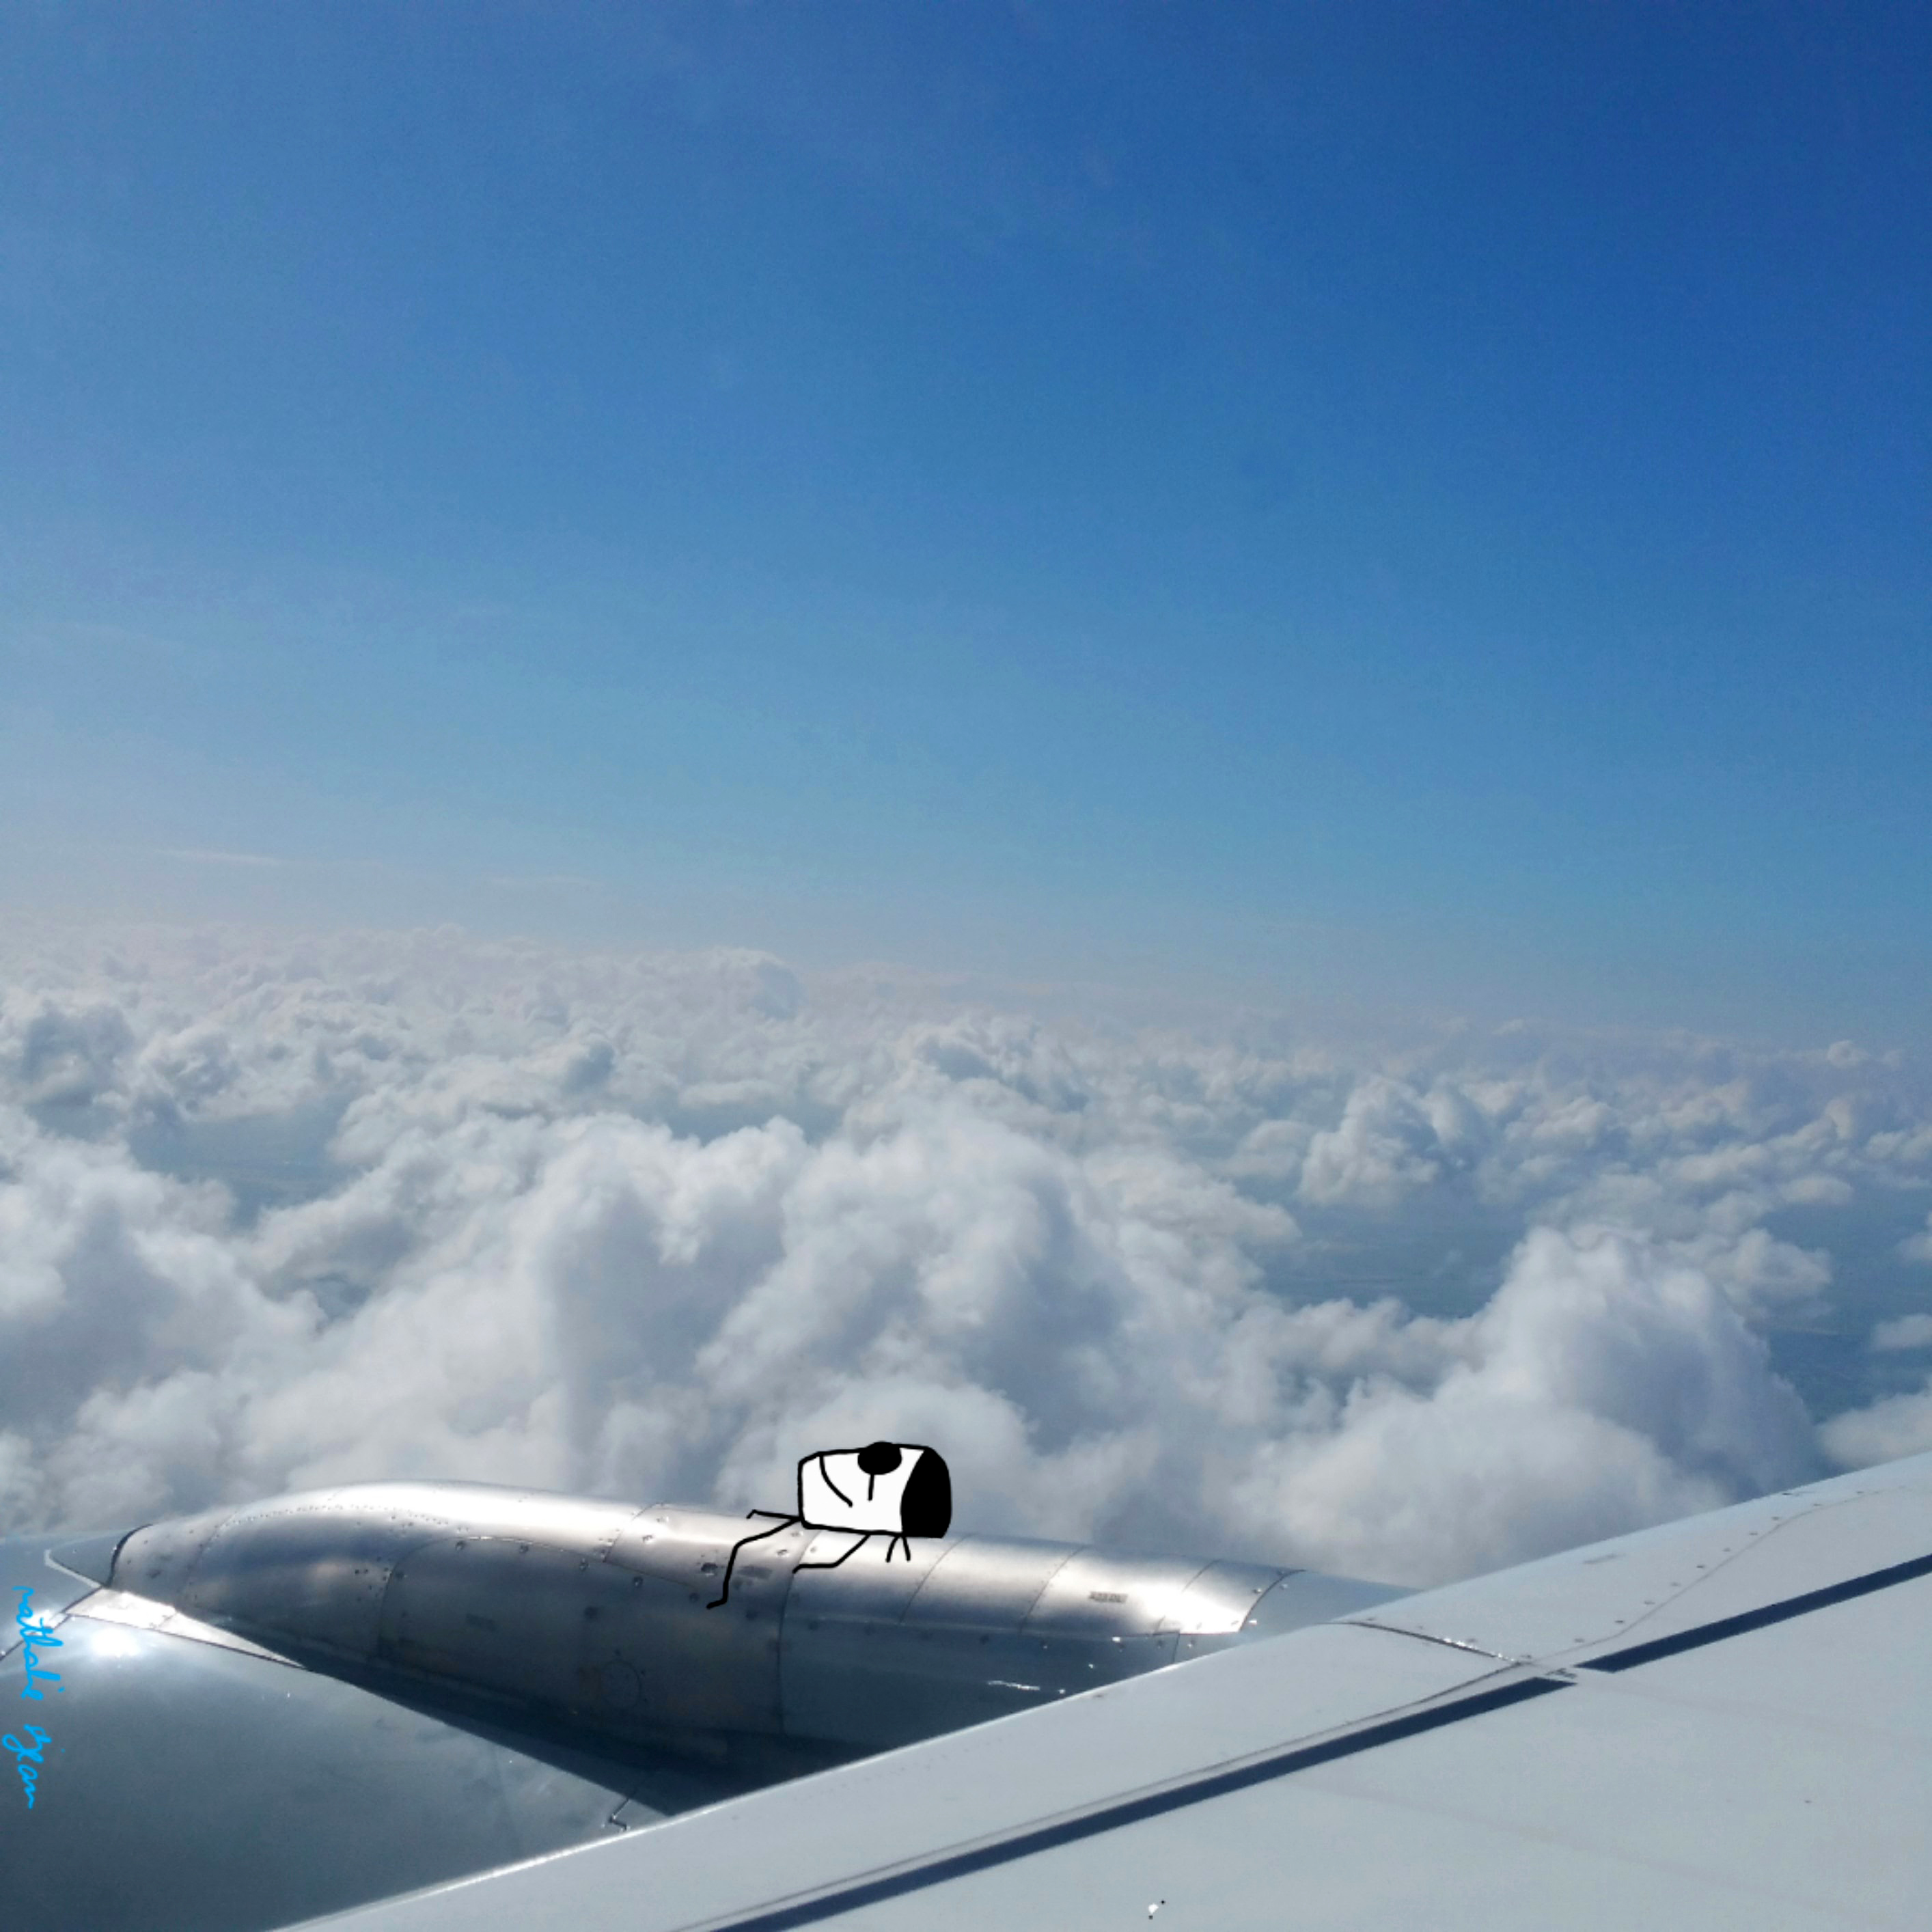 Tanning on a plane by Nathalie Sejean